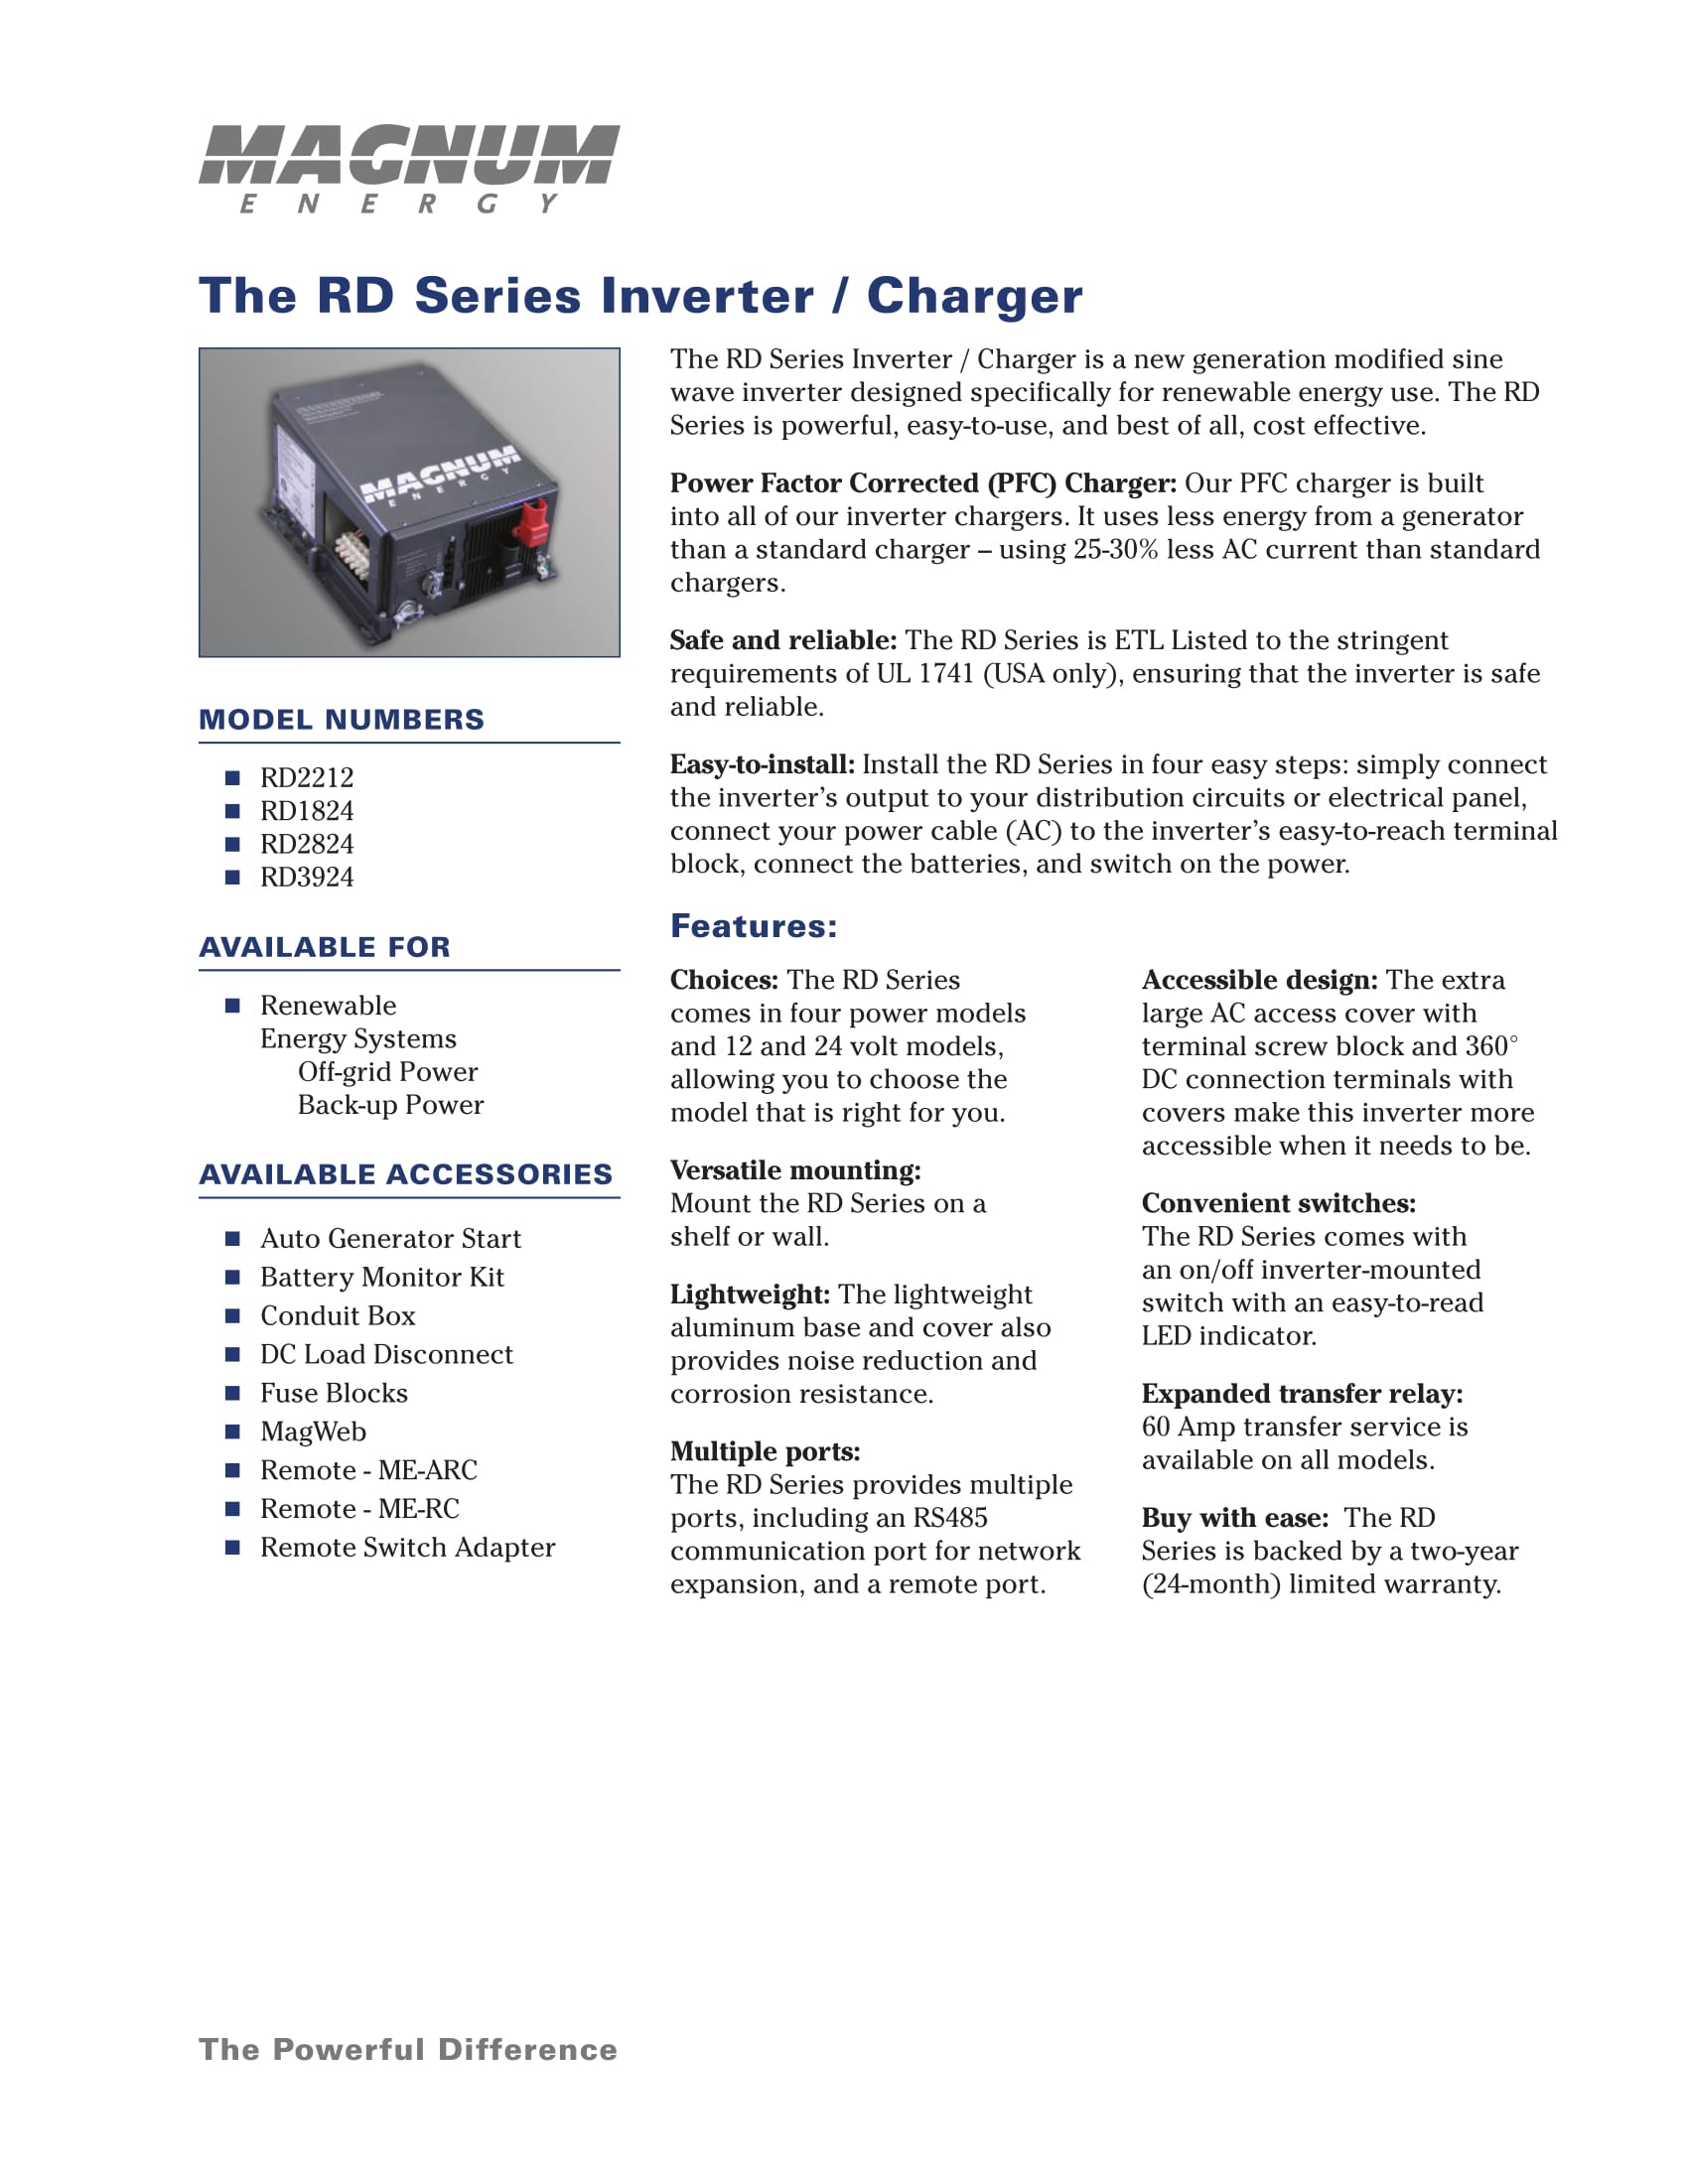 Magnum energy rd 2824 2800w 24v modified sine wave inverter 120a introducing the rd series inverter charger from magnum energy a new generation inverter designed specifically for off grid use the rd series is powerful publicscrutiny Choice Image